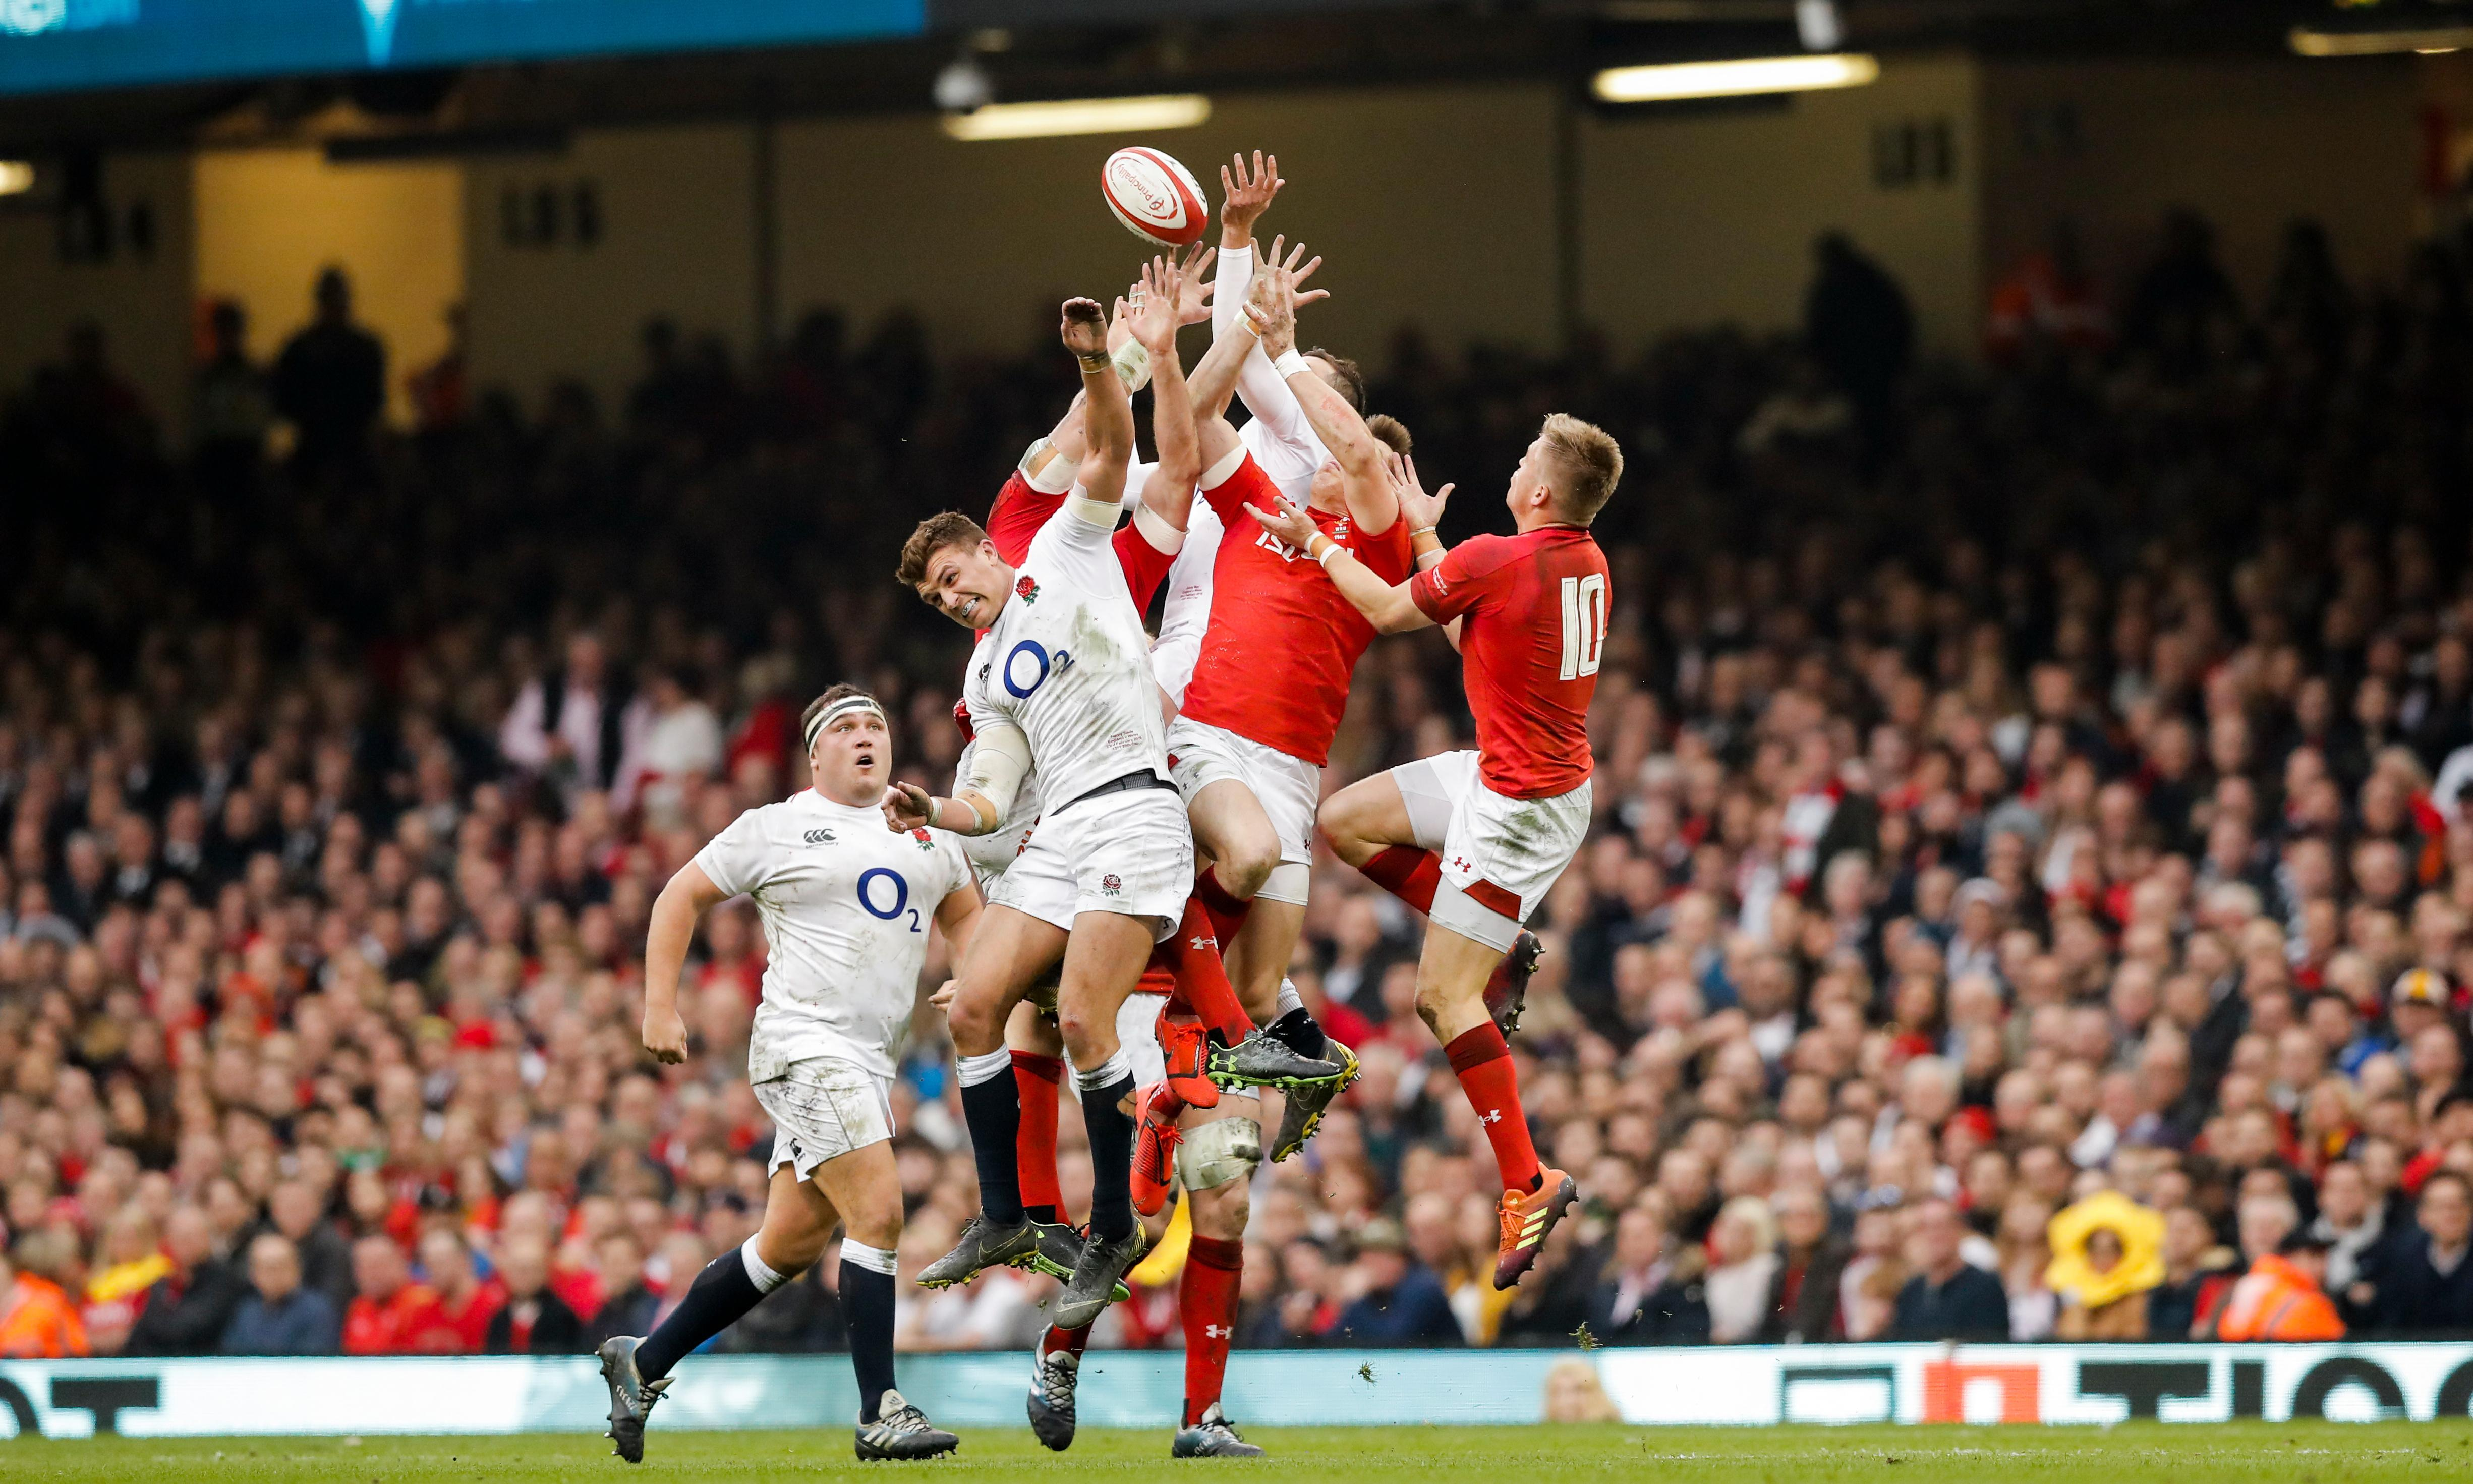 Eddie Jones's words about Wales prove to be a warning, not a wind-up